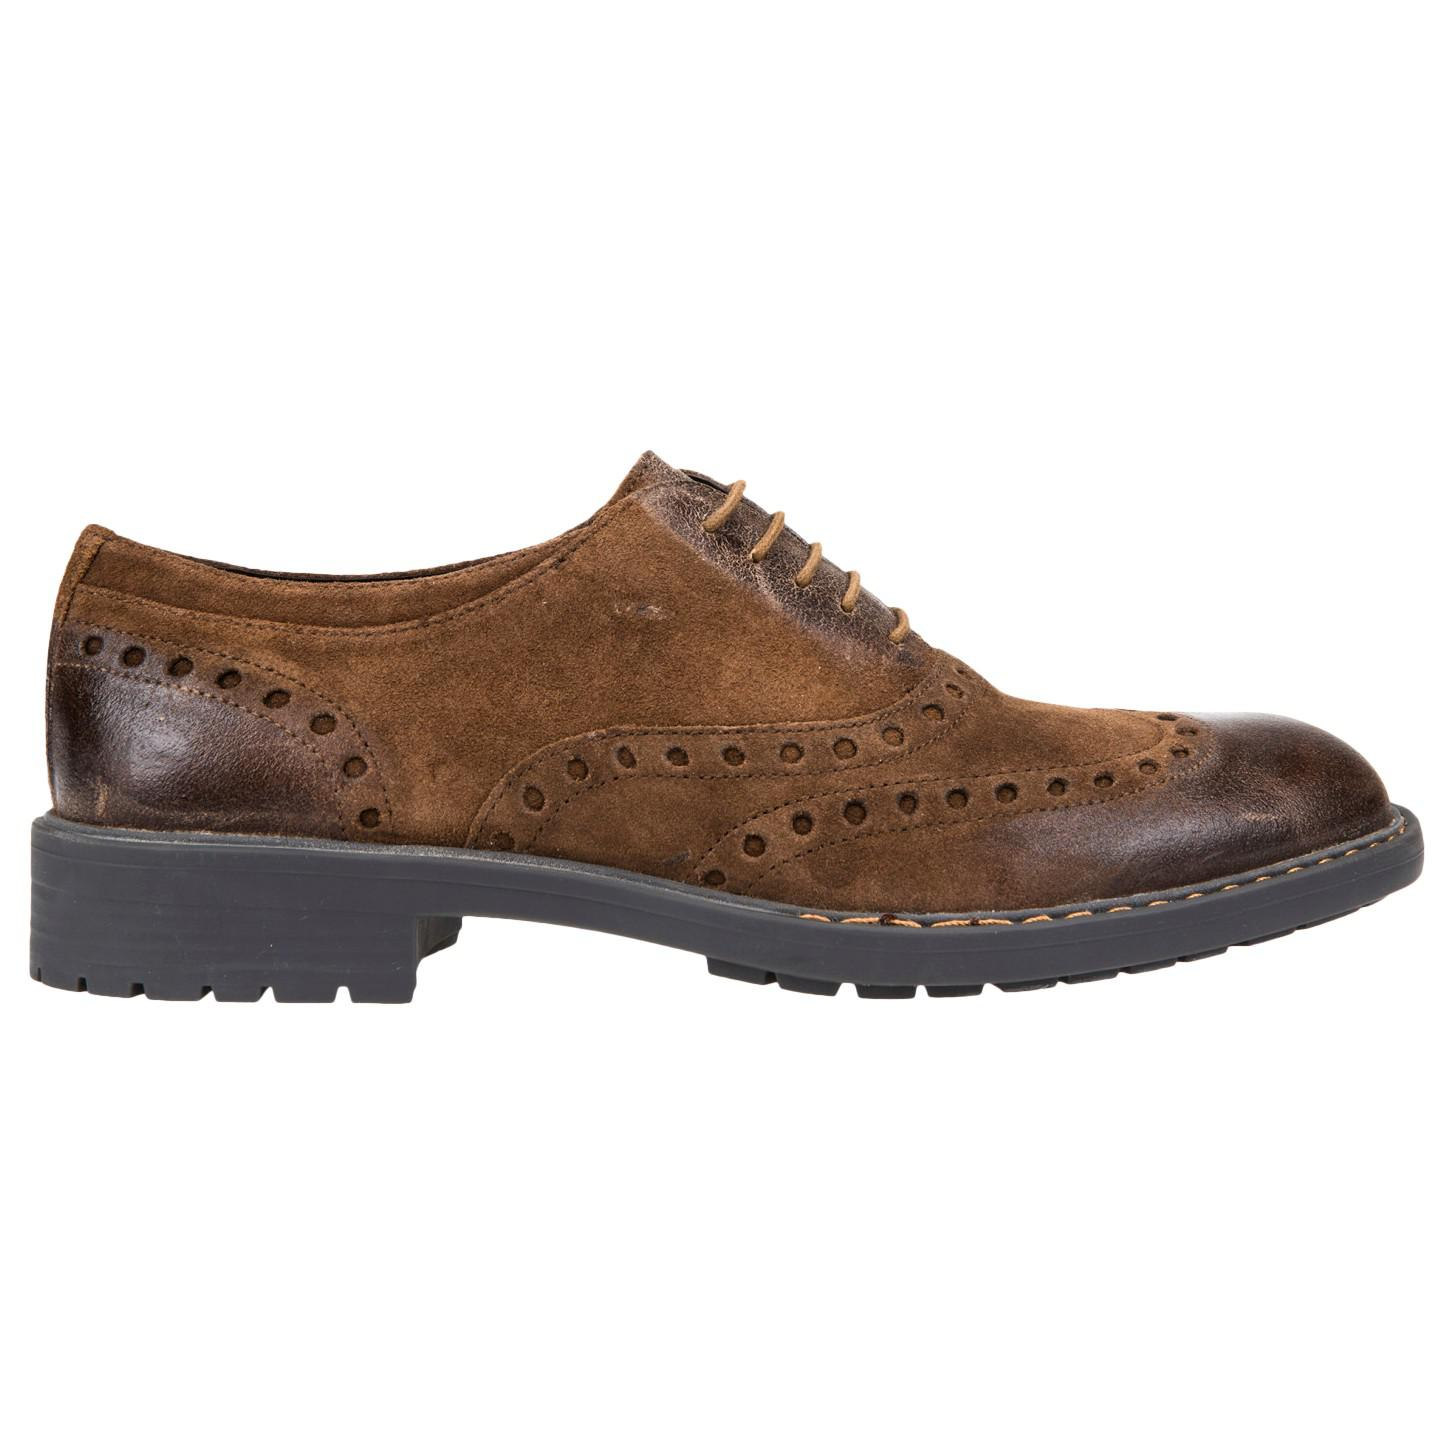 Geox Kapsian Leather Oxford Brouge Shoes in Light Brown (Brown) for Men